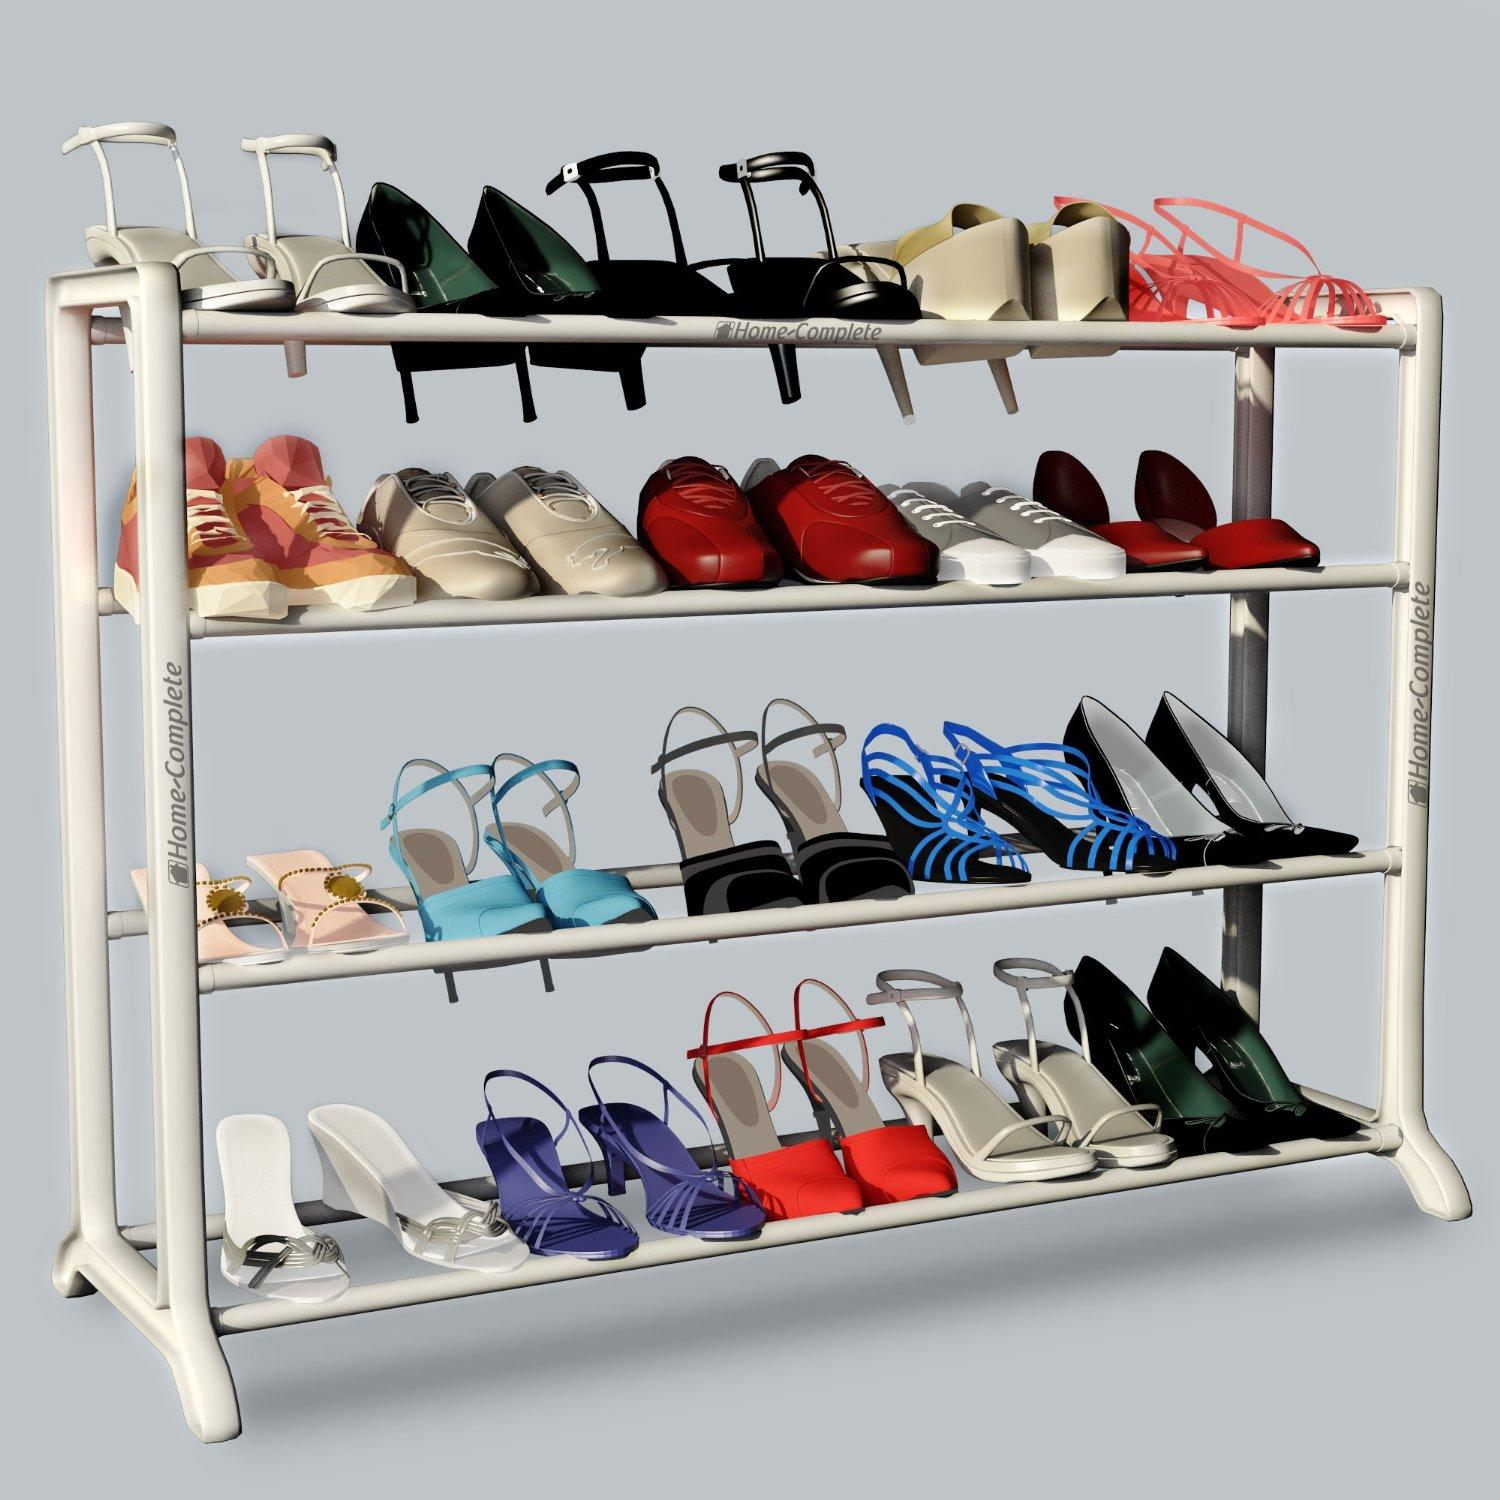 $9.99 Neatlizer Shoe Rack Organizer Storage Bench